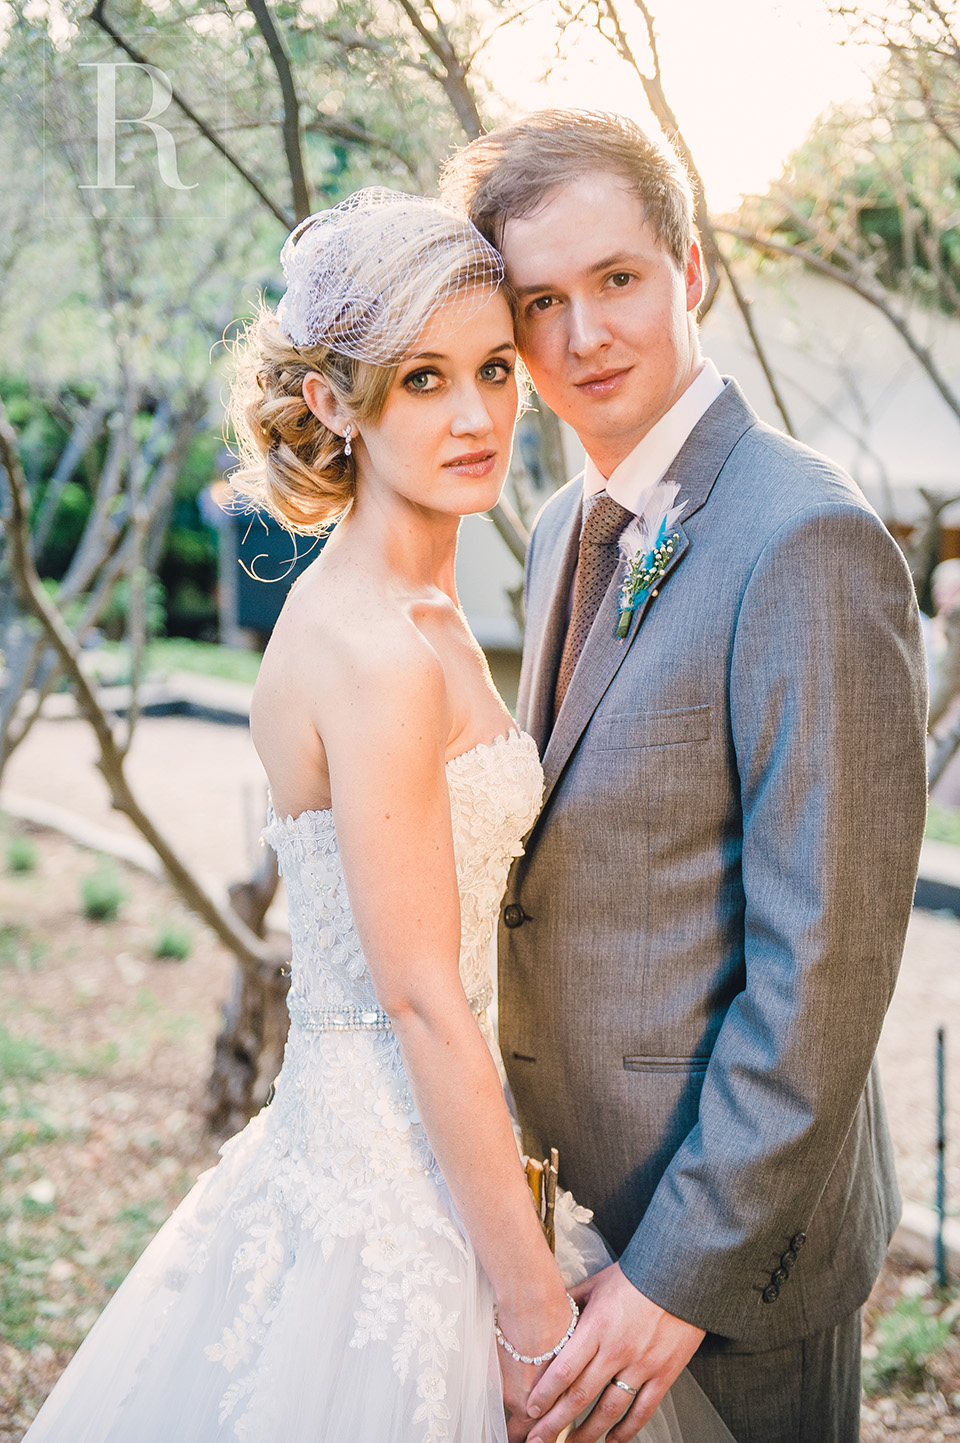 RYAN PARKER_WEDDING PHOTOGRAPHER_SOUTH AFRICA_JOHANNESBURG_MORRELLS_M&M-2989.jpg